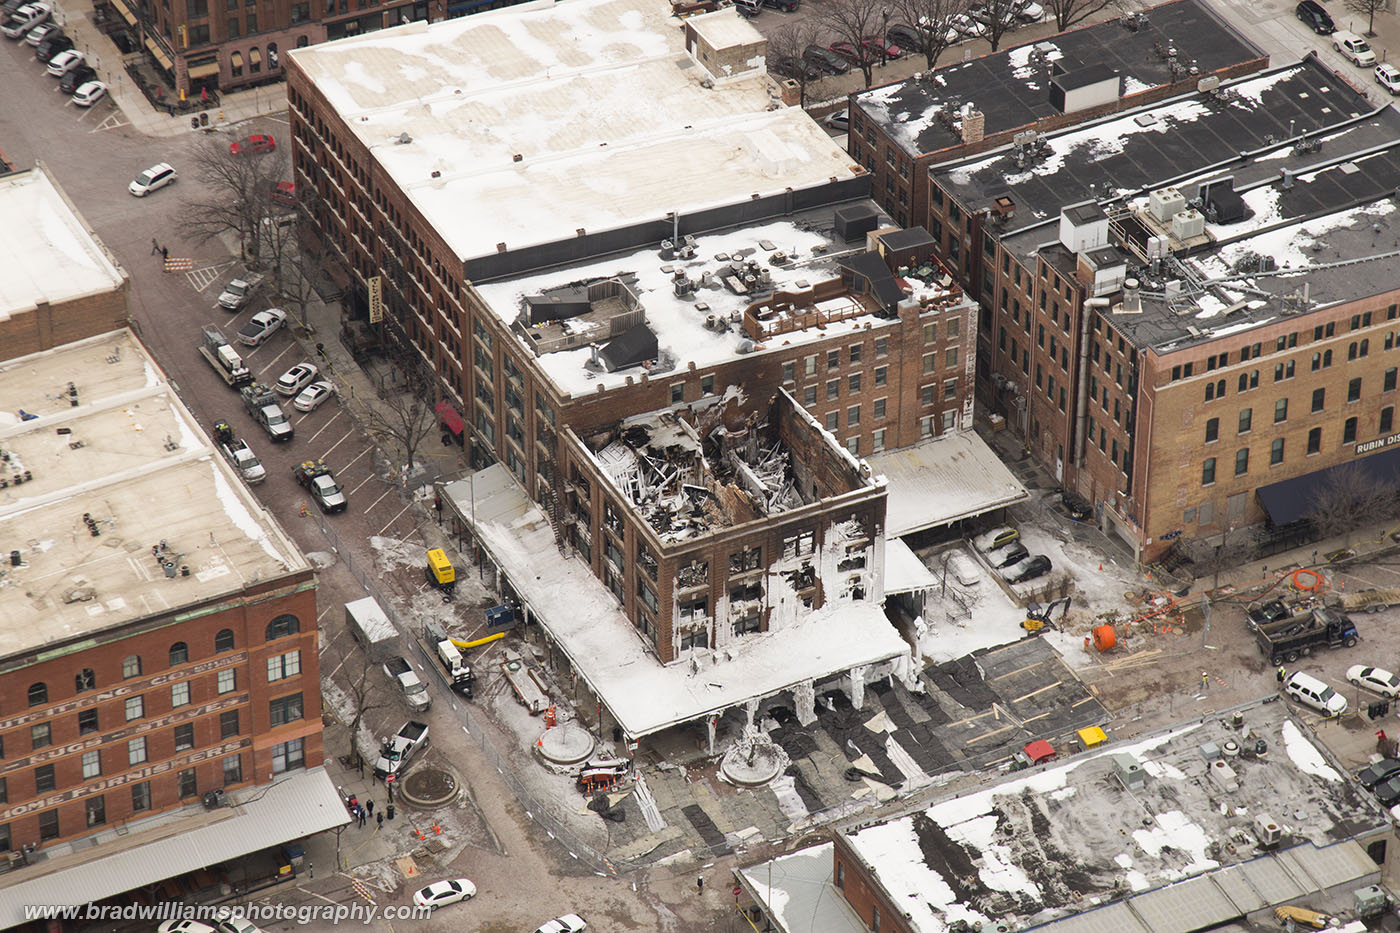 Mercer Building, explosion, fire, destruction, aerial, old market, omaha, nebraska, photo